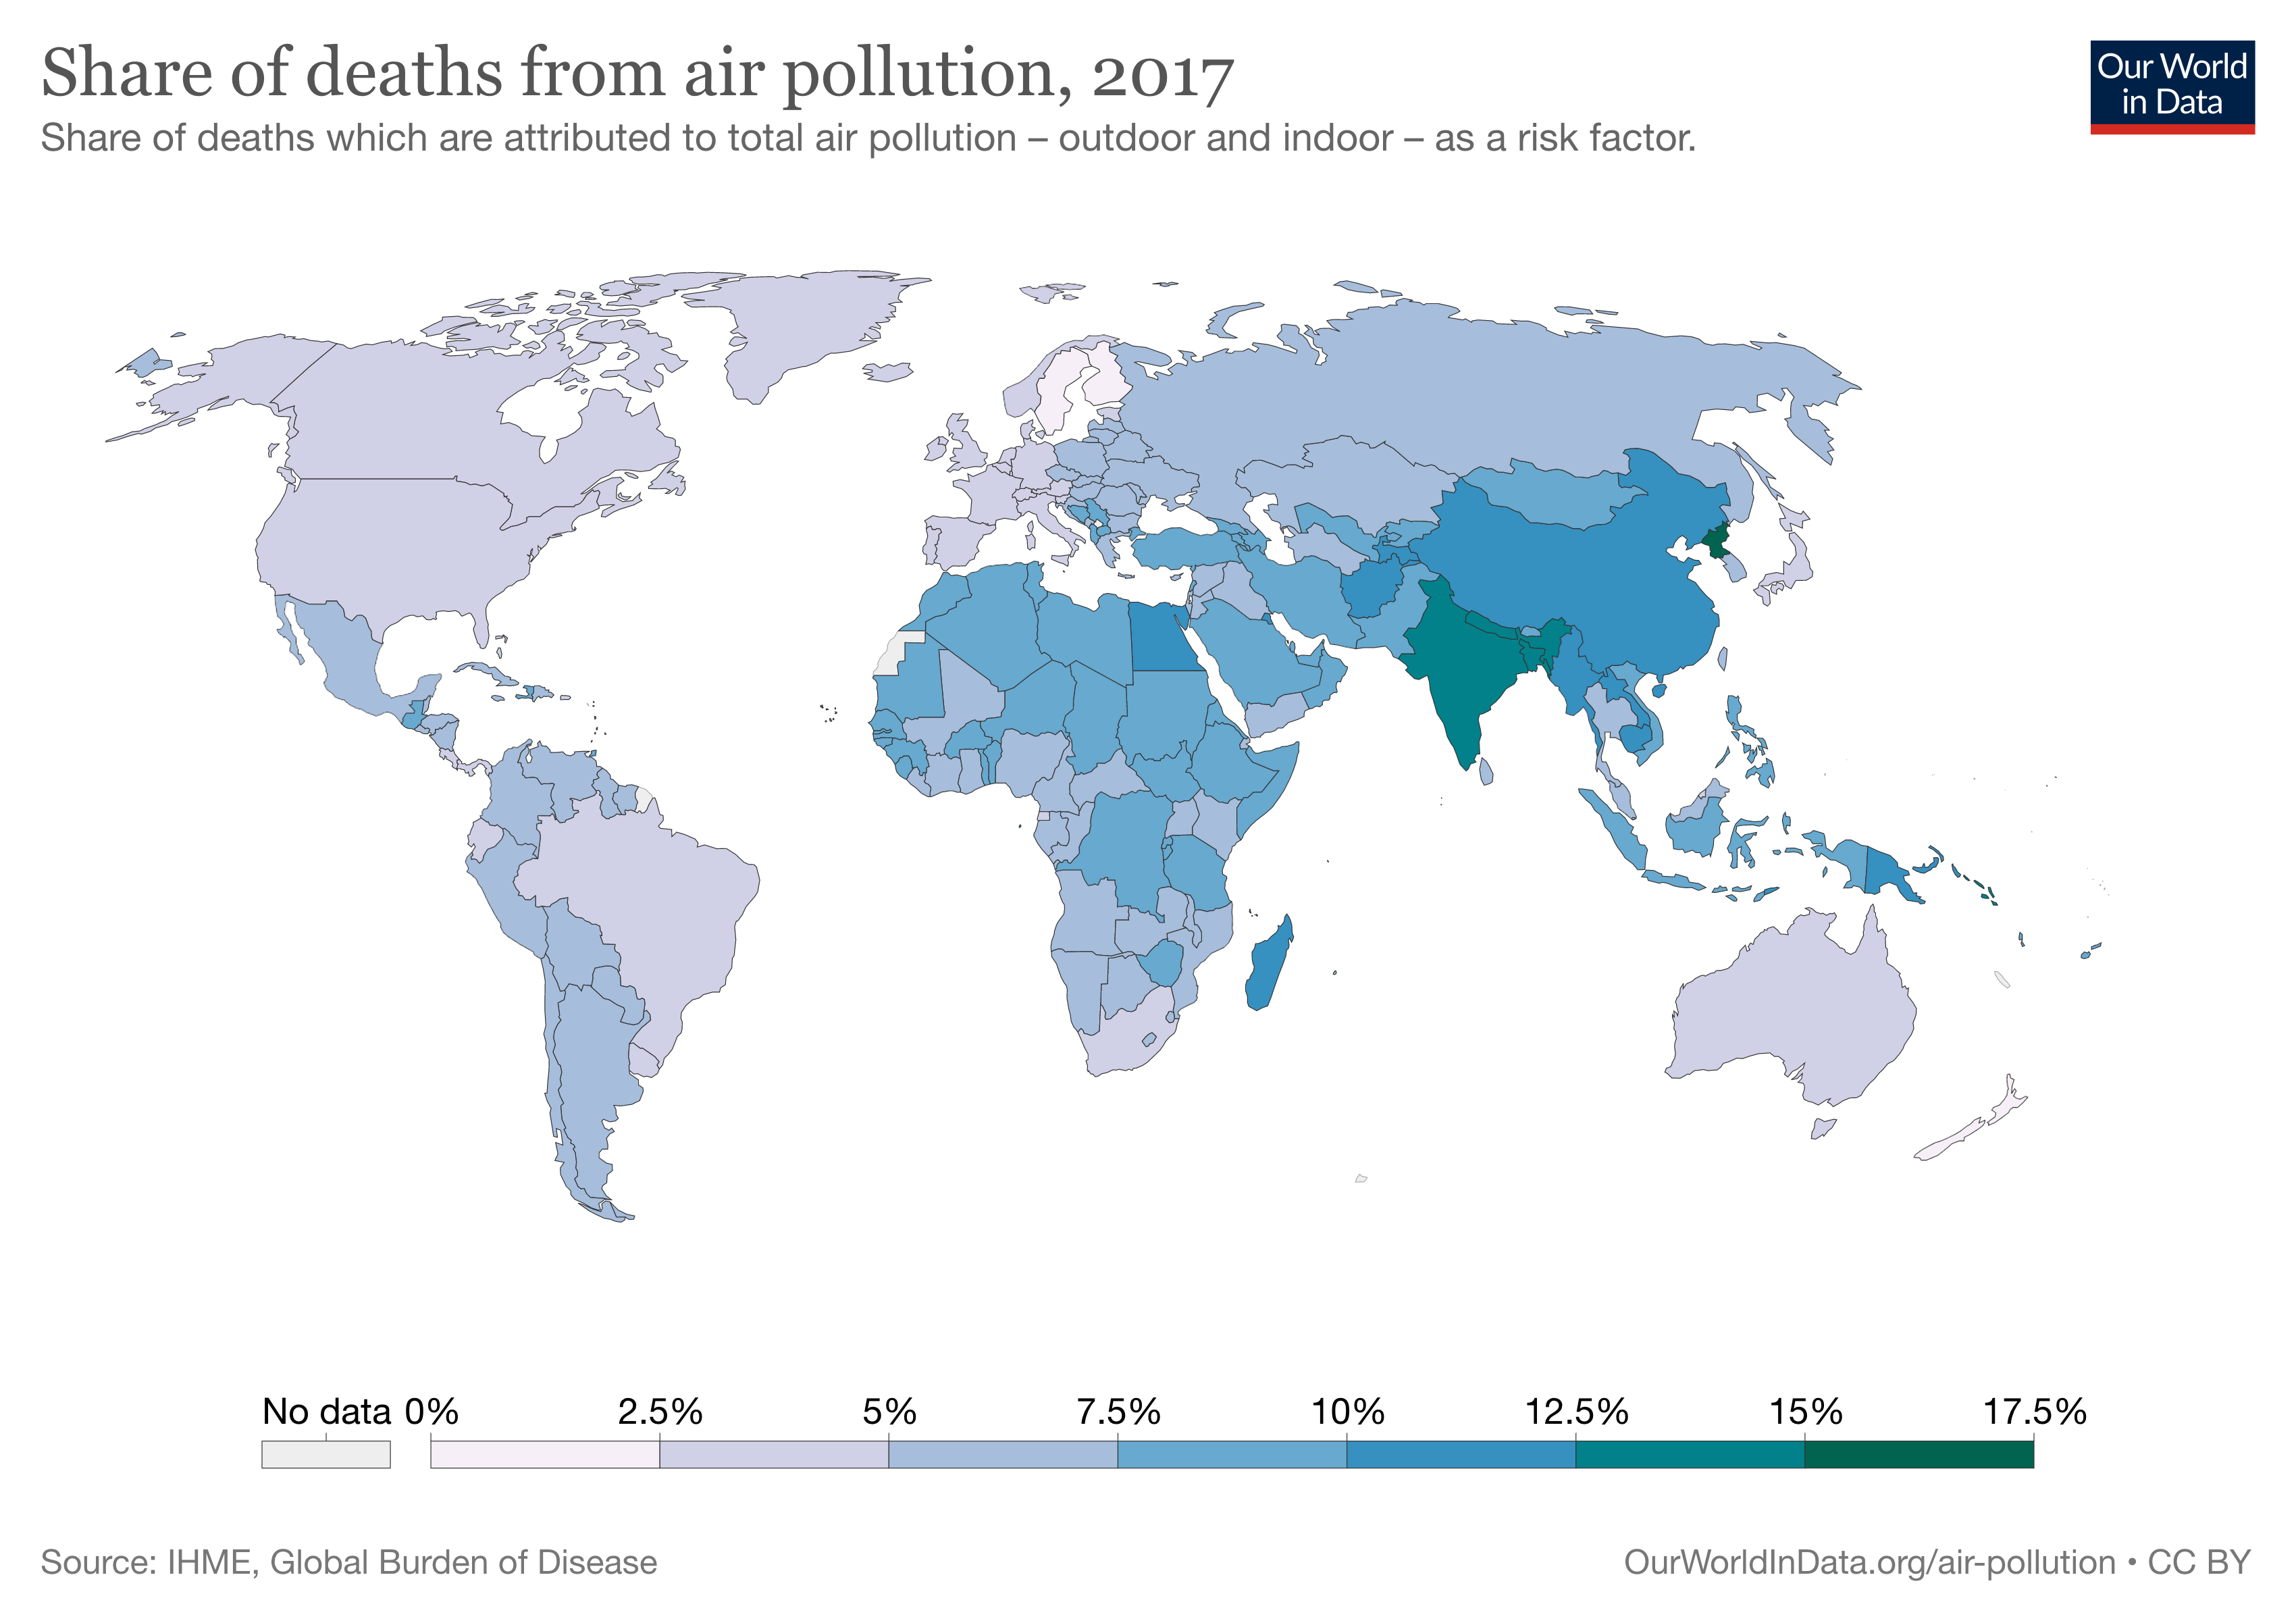 Share of deaths from air pollution, 2017